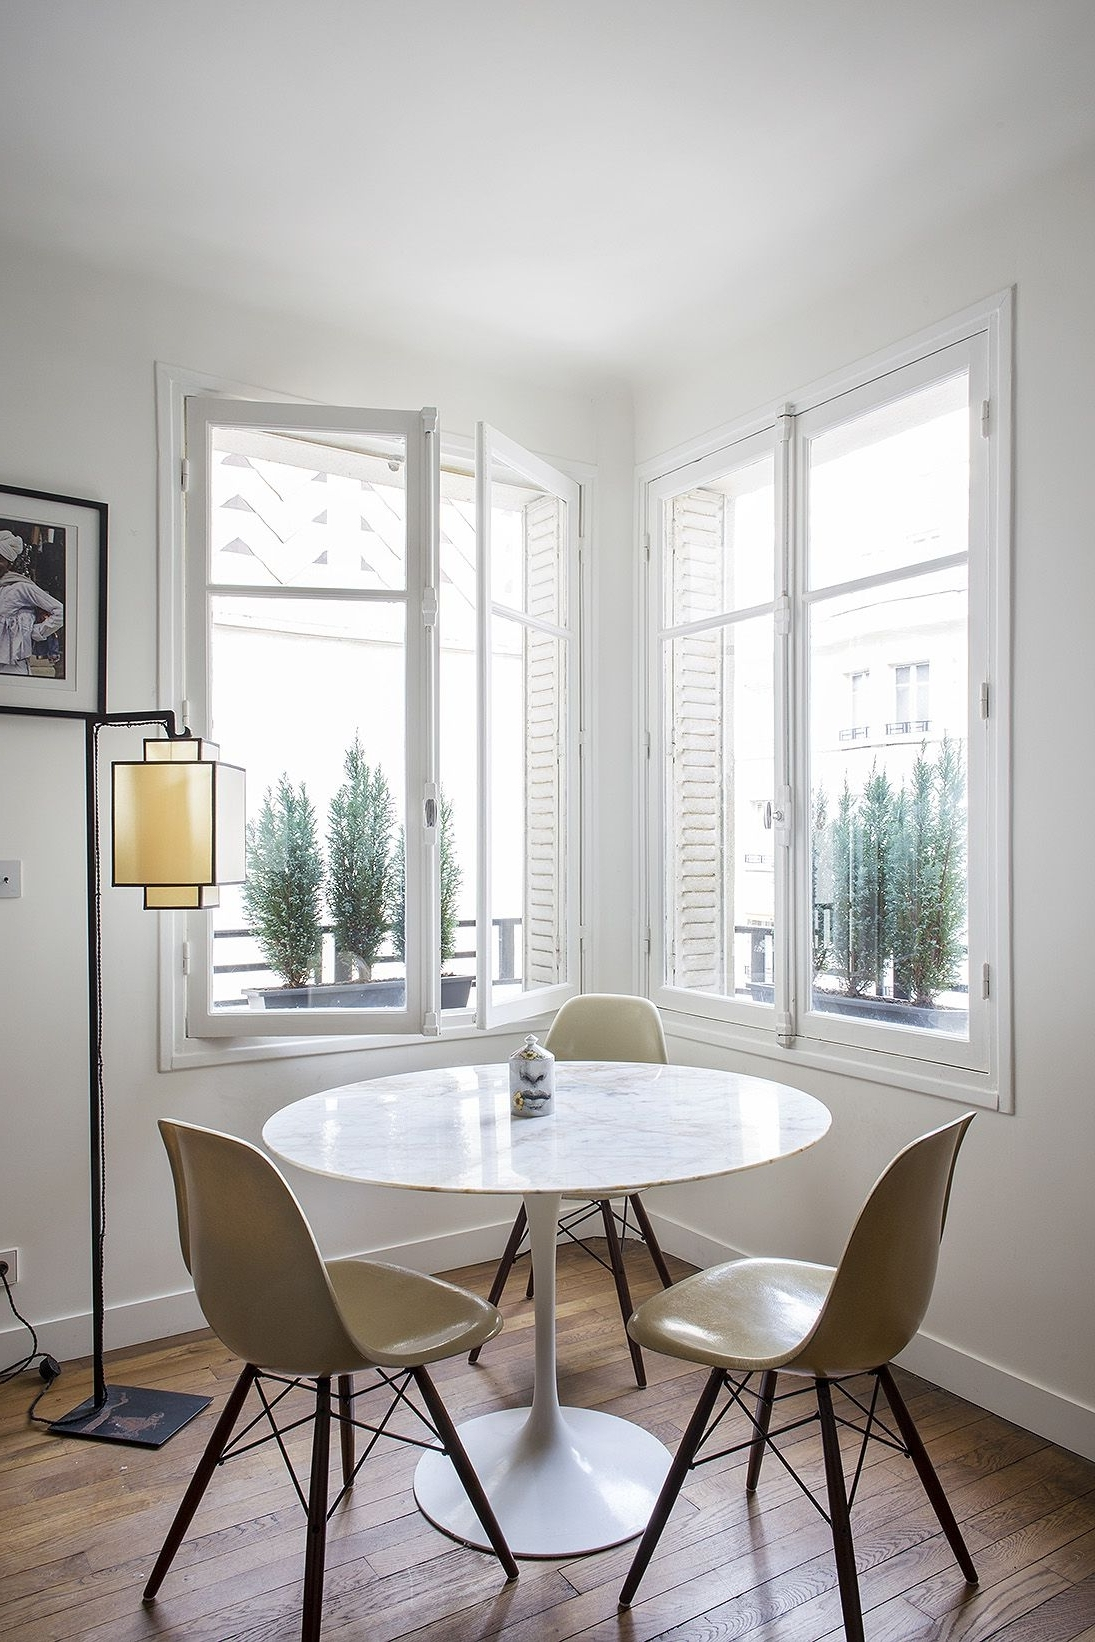 Paris Dining Tables For Most Popular 9 Small Space Ideas To Steal From A Tiny Paris Apartment (Gallery 2 of 25)